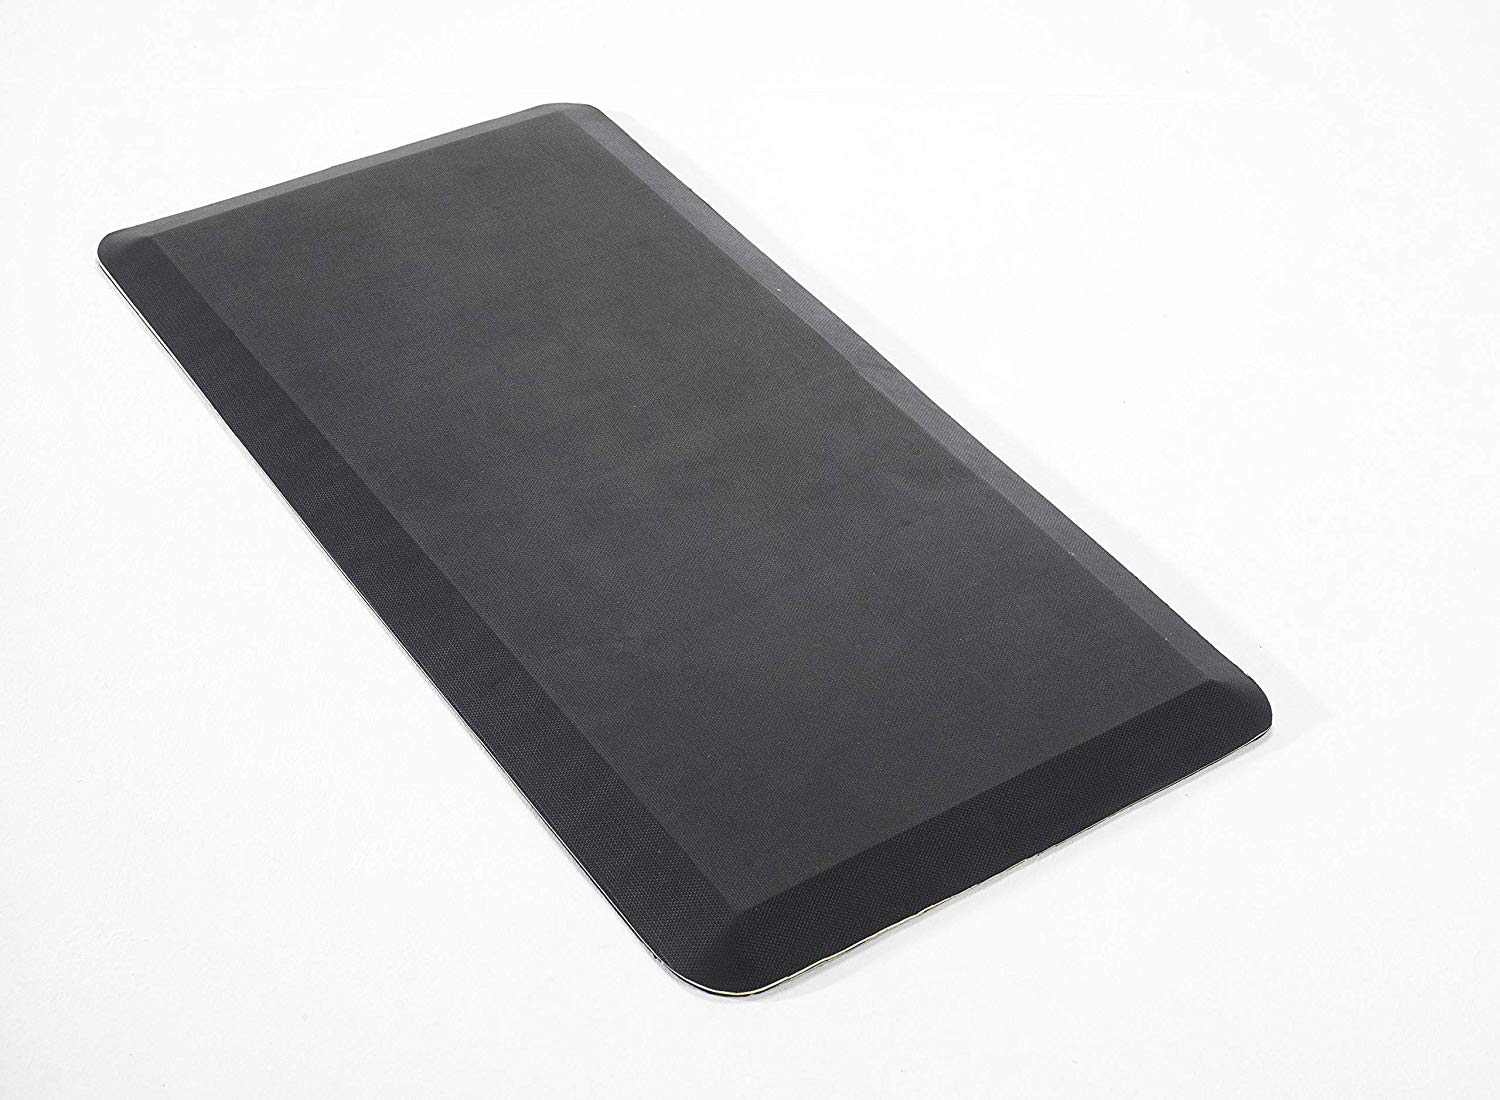 Mabel Home Anti Fatigue Floor Mat 2 Size 20x32 Amp 20x39 4